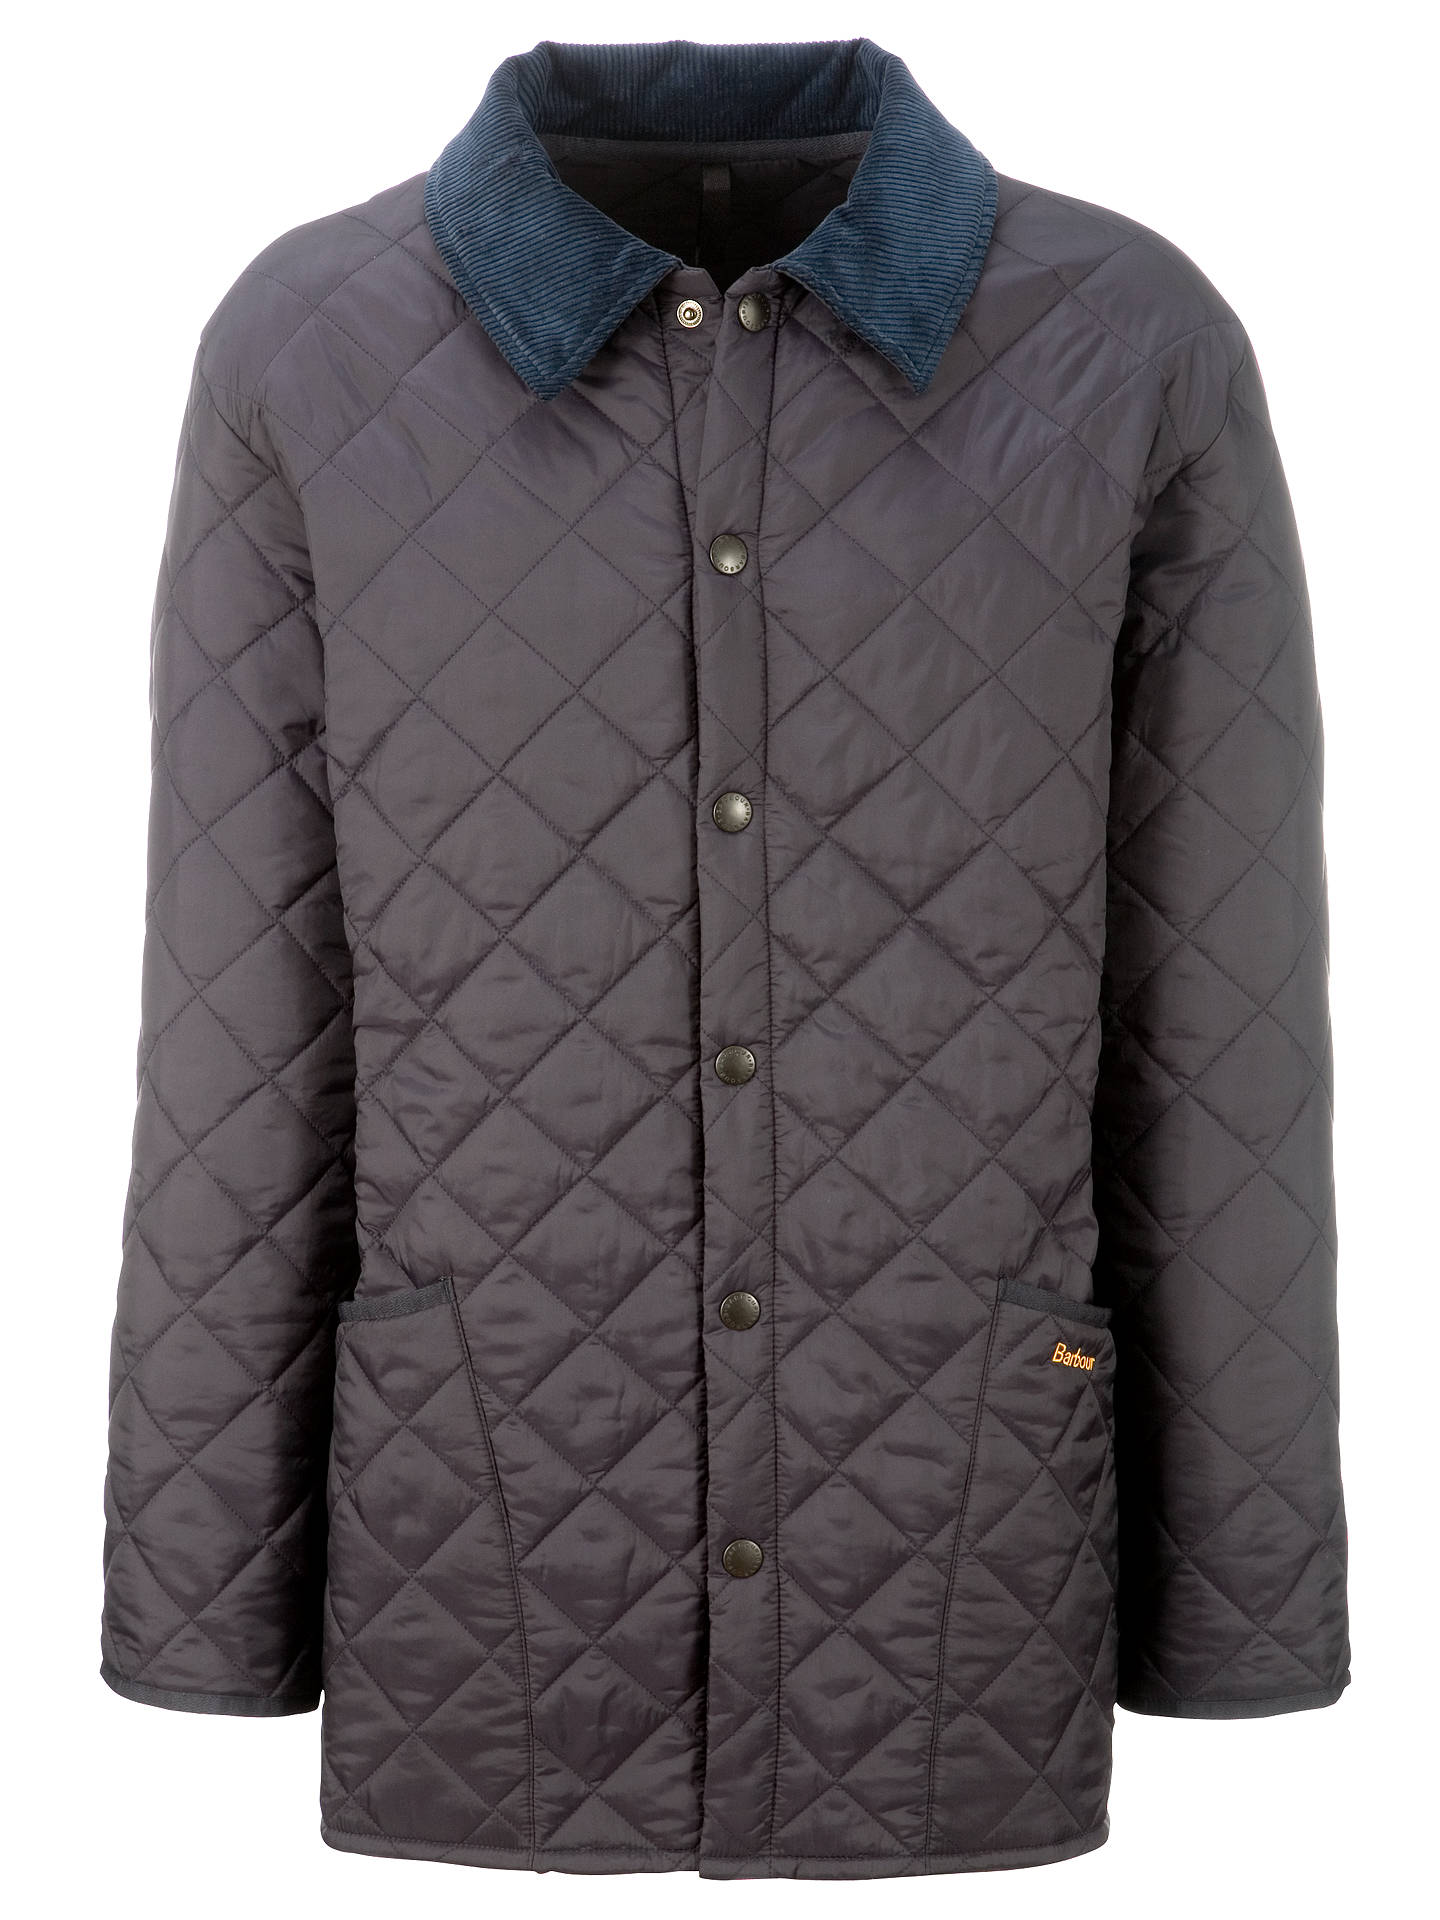 Barbour Liddesdale Quilted Jacket Navy At John Lewis Partners